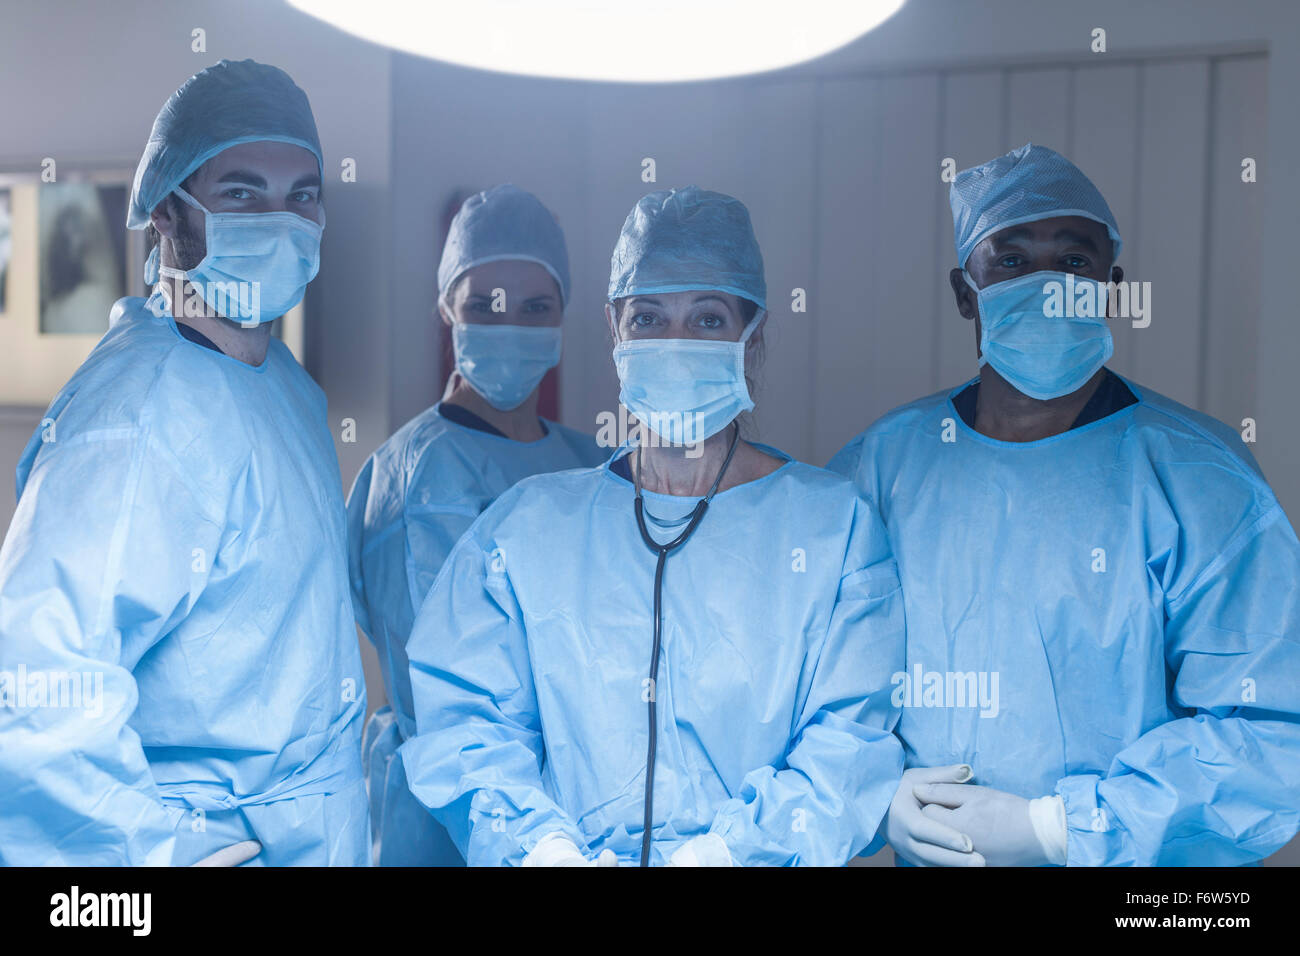 Portrait of surgical team wearing masks - Stock Image